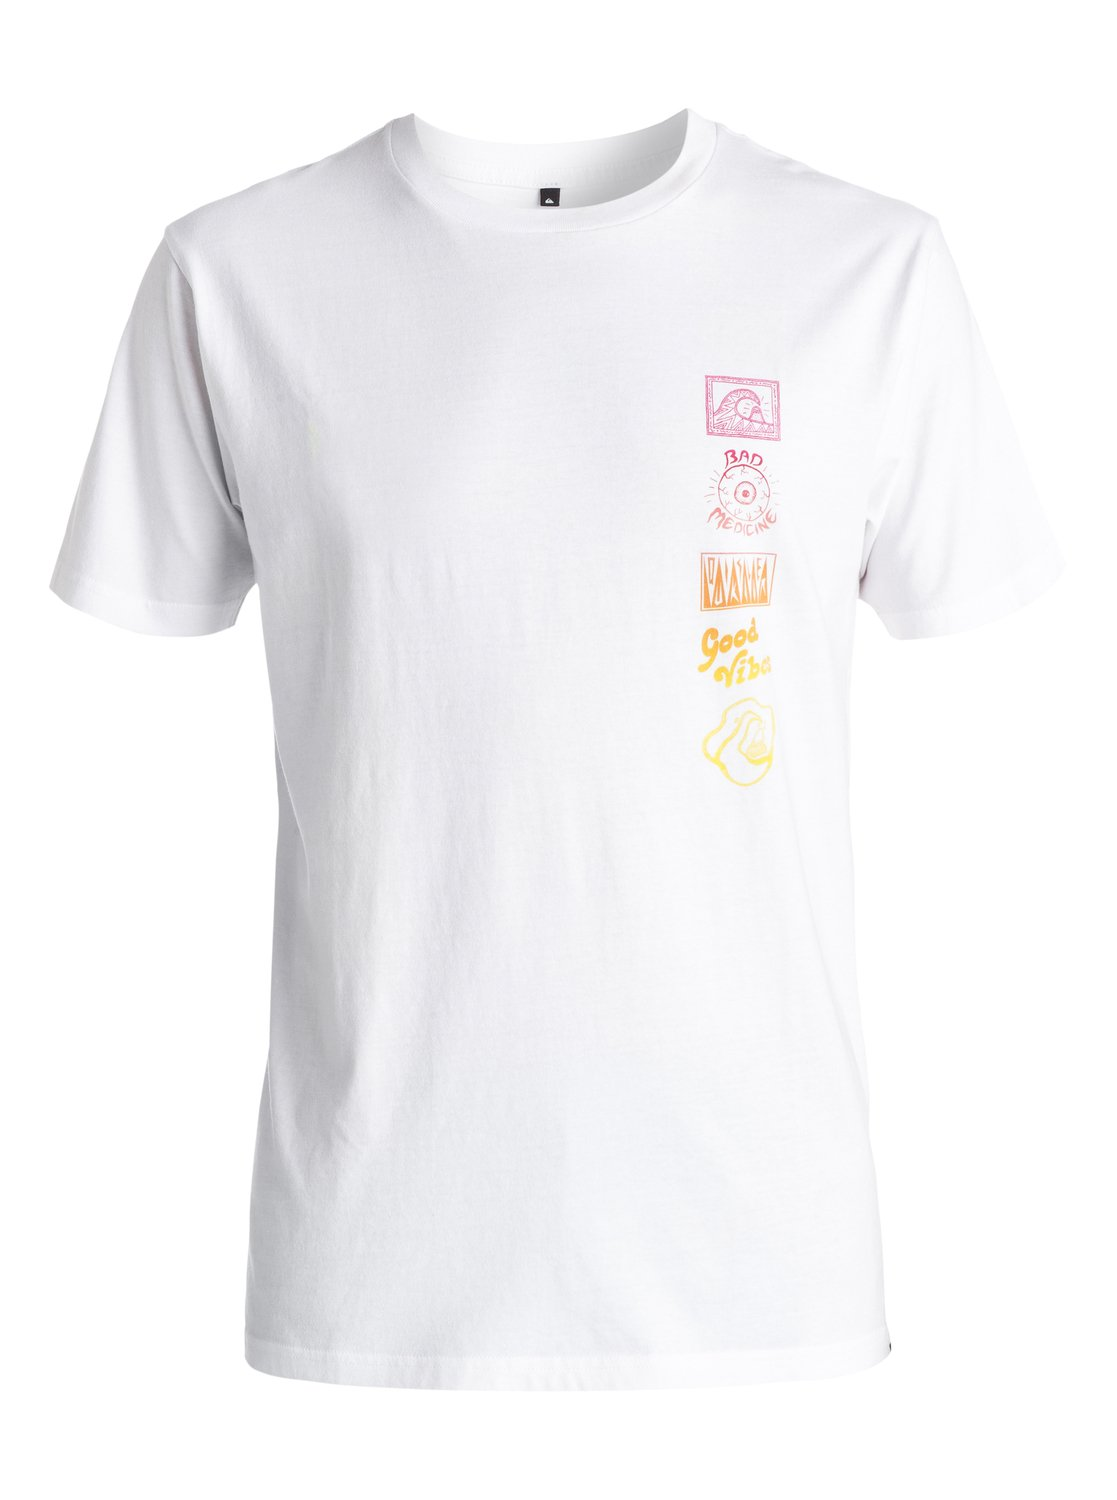 Am Side track - tee-shirt pour homme - quiksilver